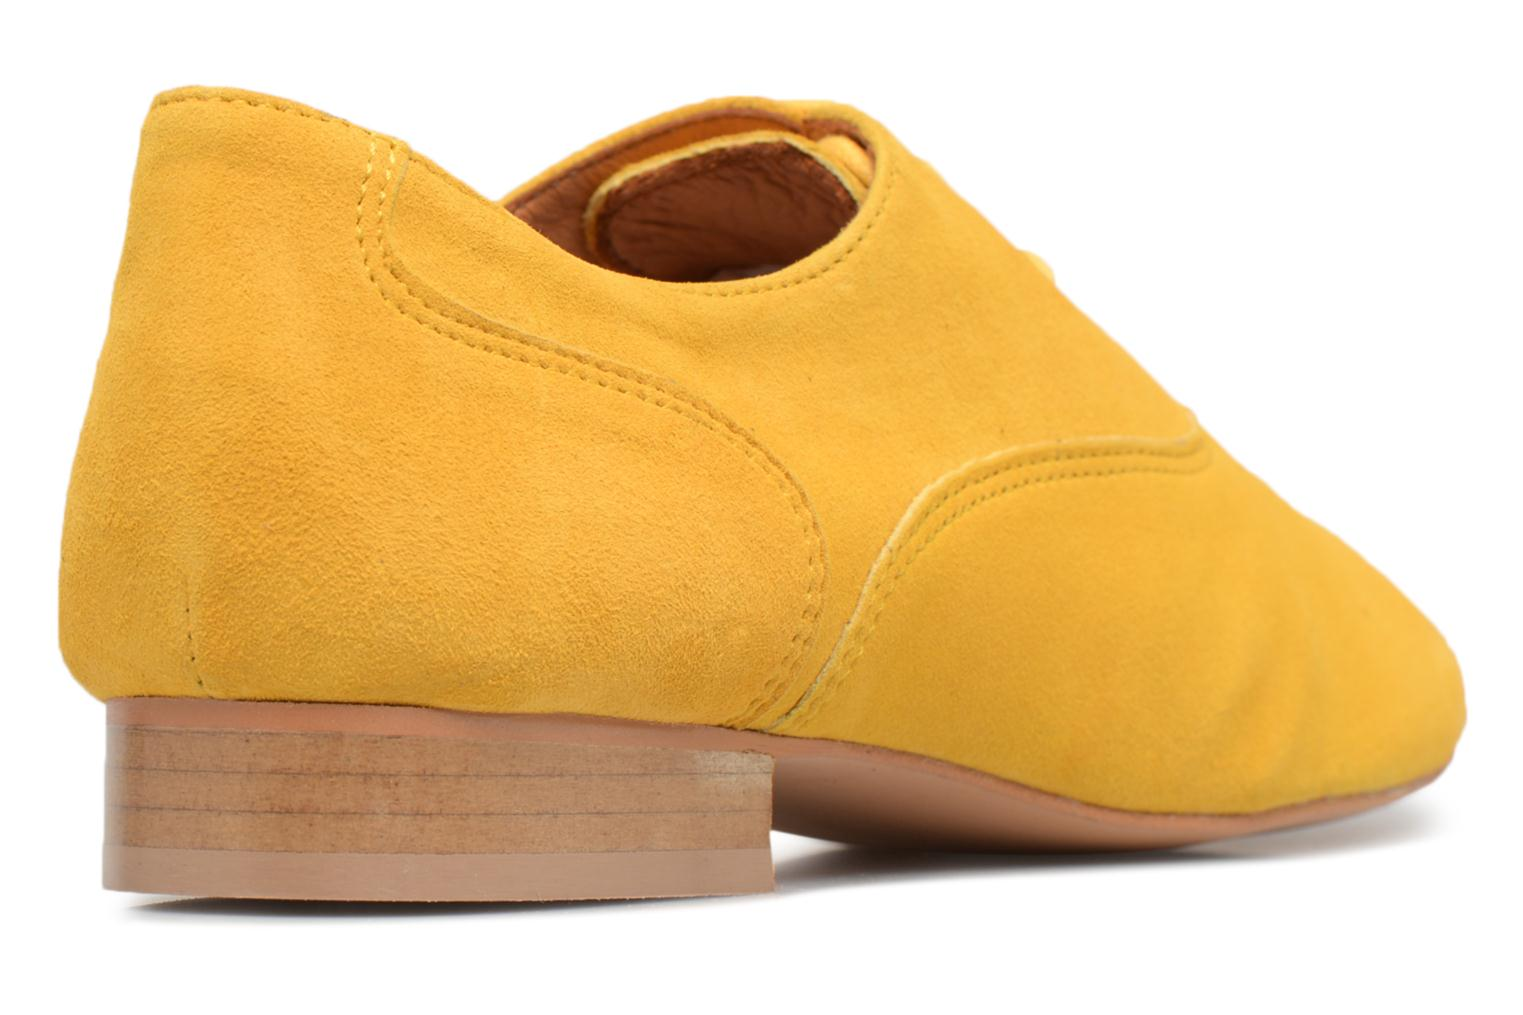 Carioca By Crew Sarenza Chaussures 2 À Lacets Made